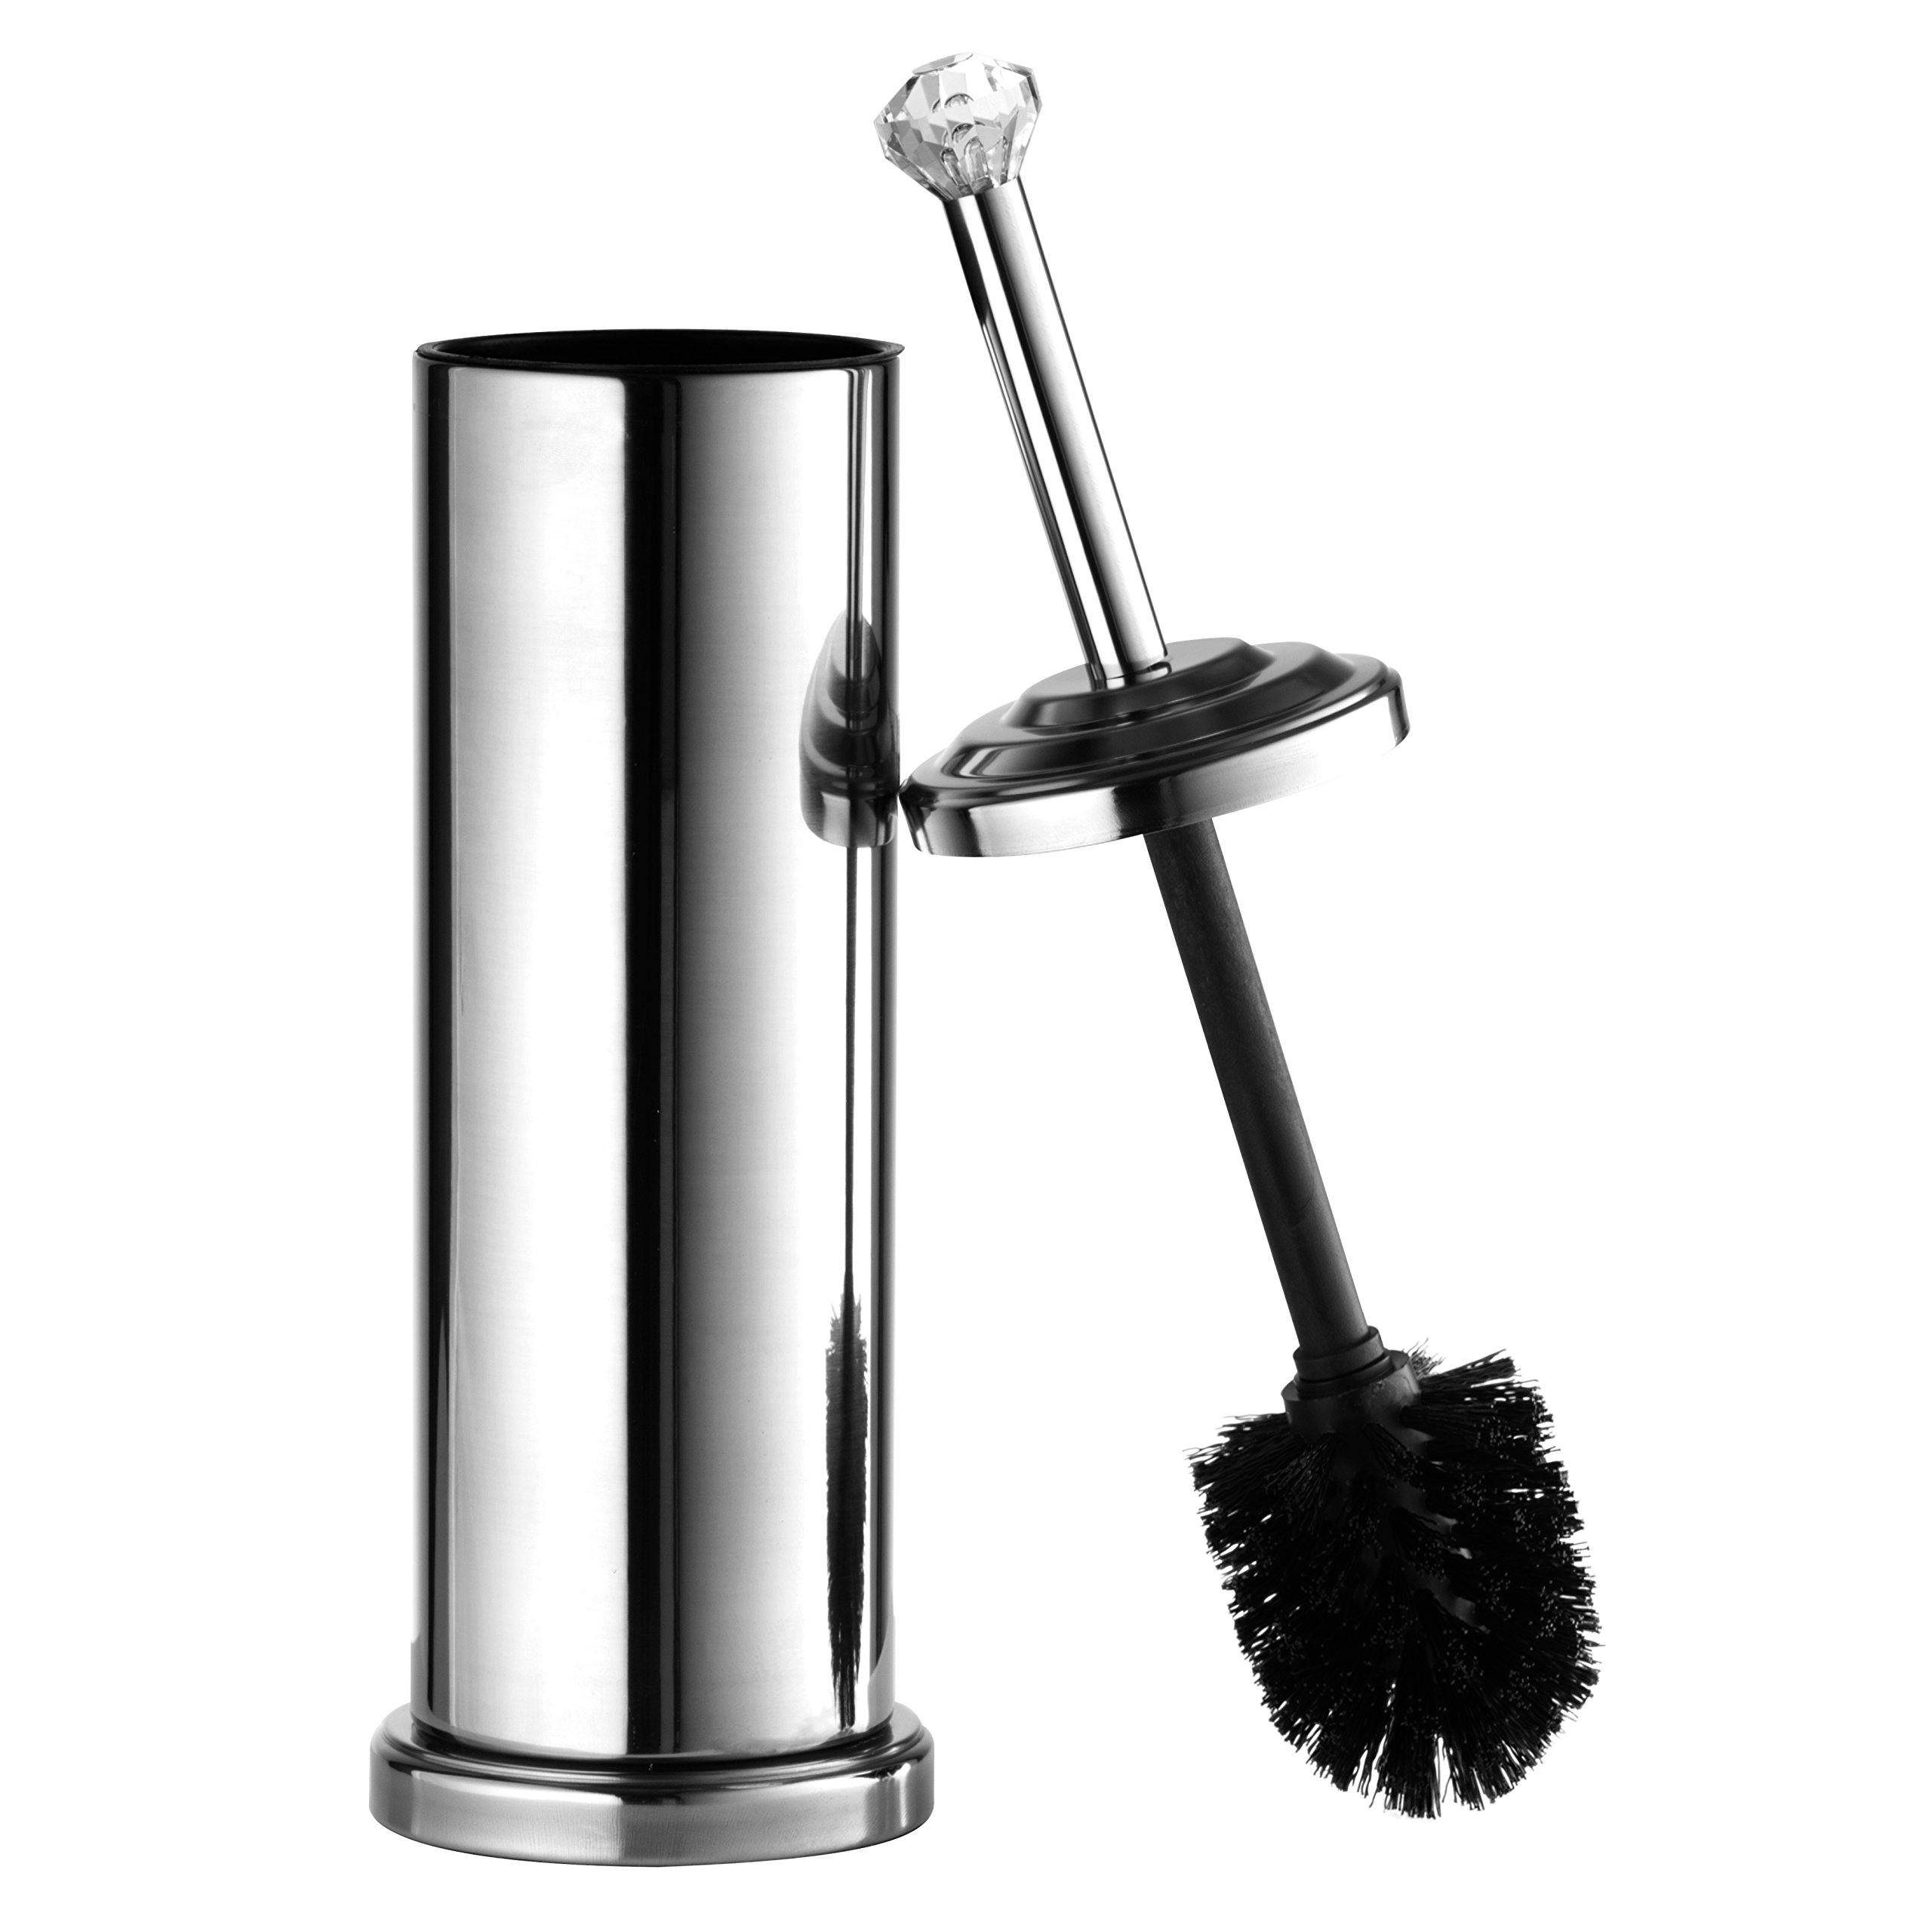 AMG and Enchante Accessories, Diamond Toilet Brush and Holder, TB112A CHR, Chrome